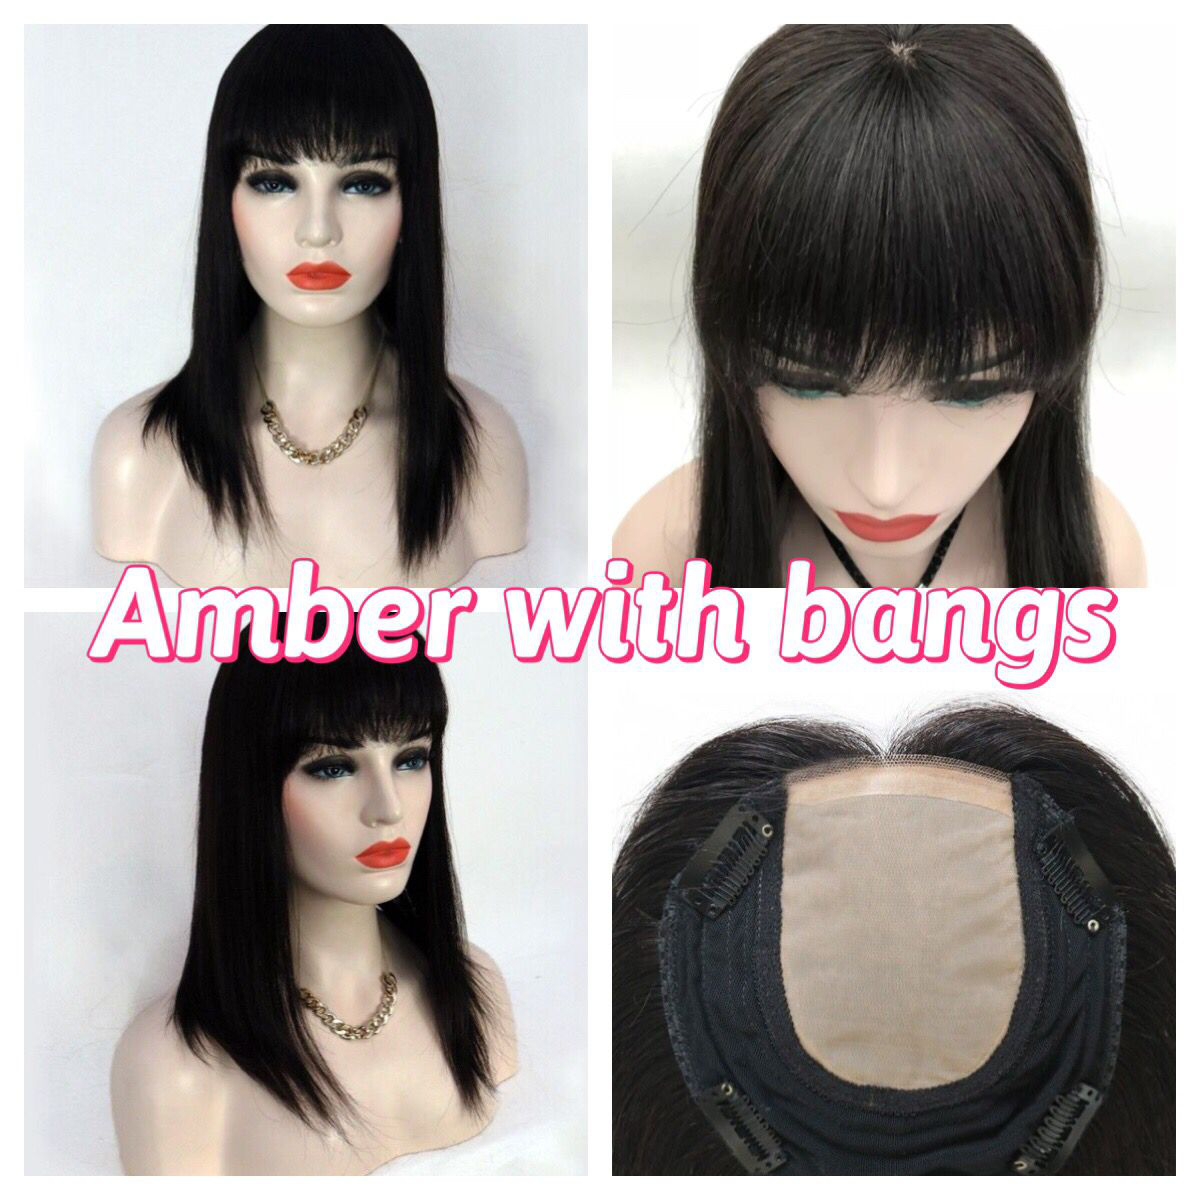 UniWigs Amber with bangs